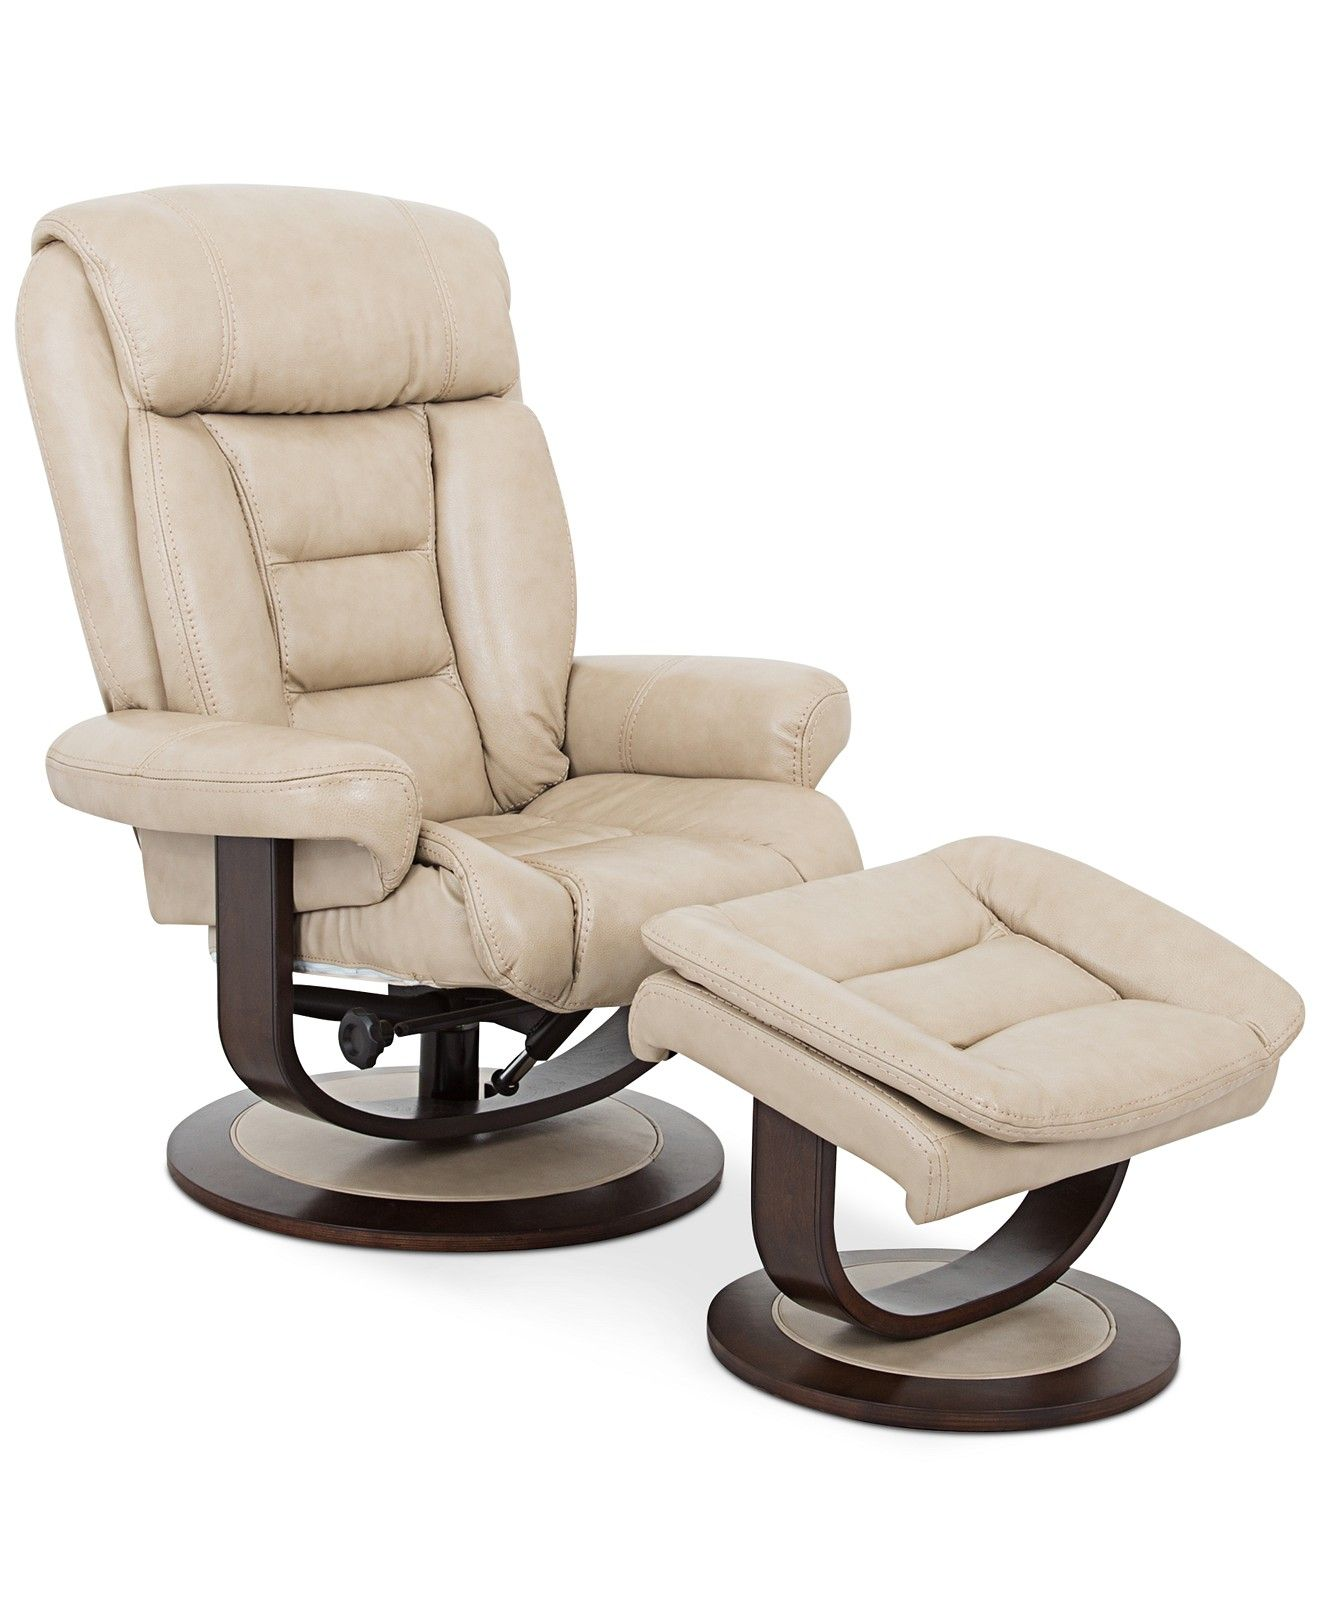 Best Eve Leather Recliner With Ottoman Furniture Macy S 400 x 300